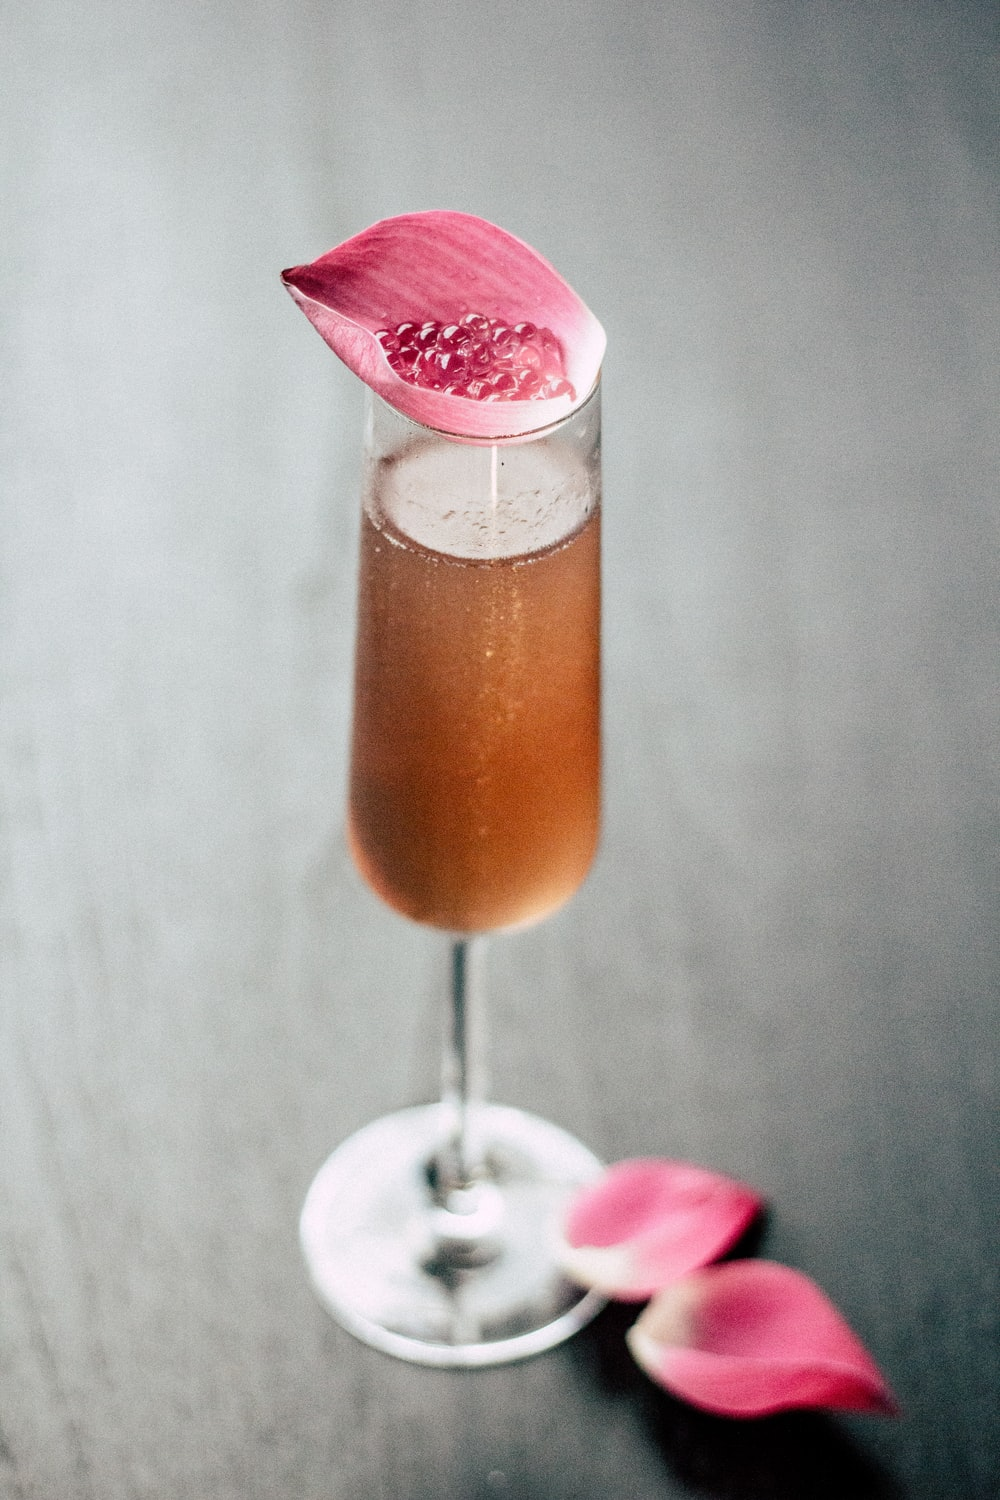 beverage in glass with pink leaf on top